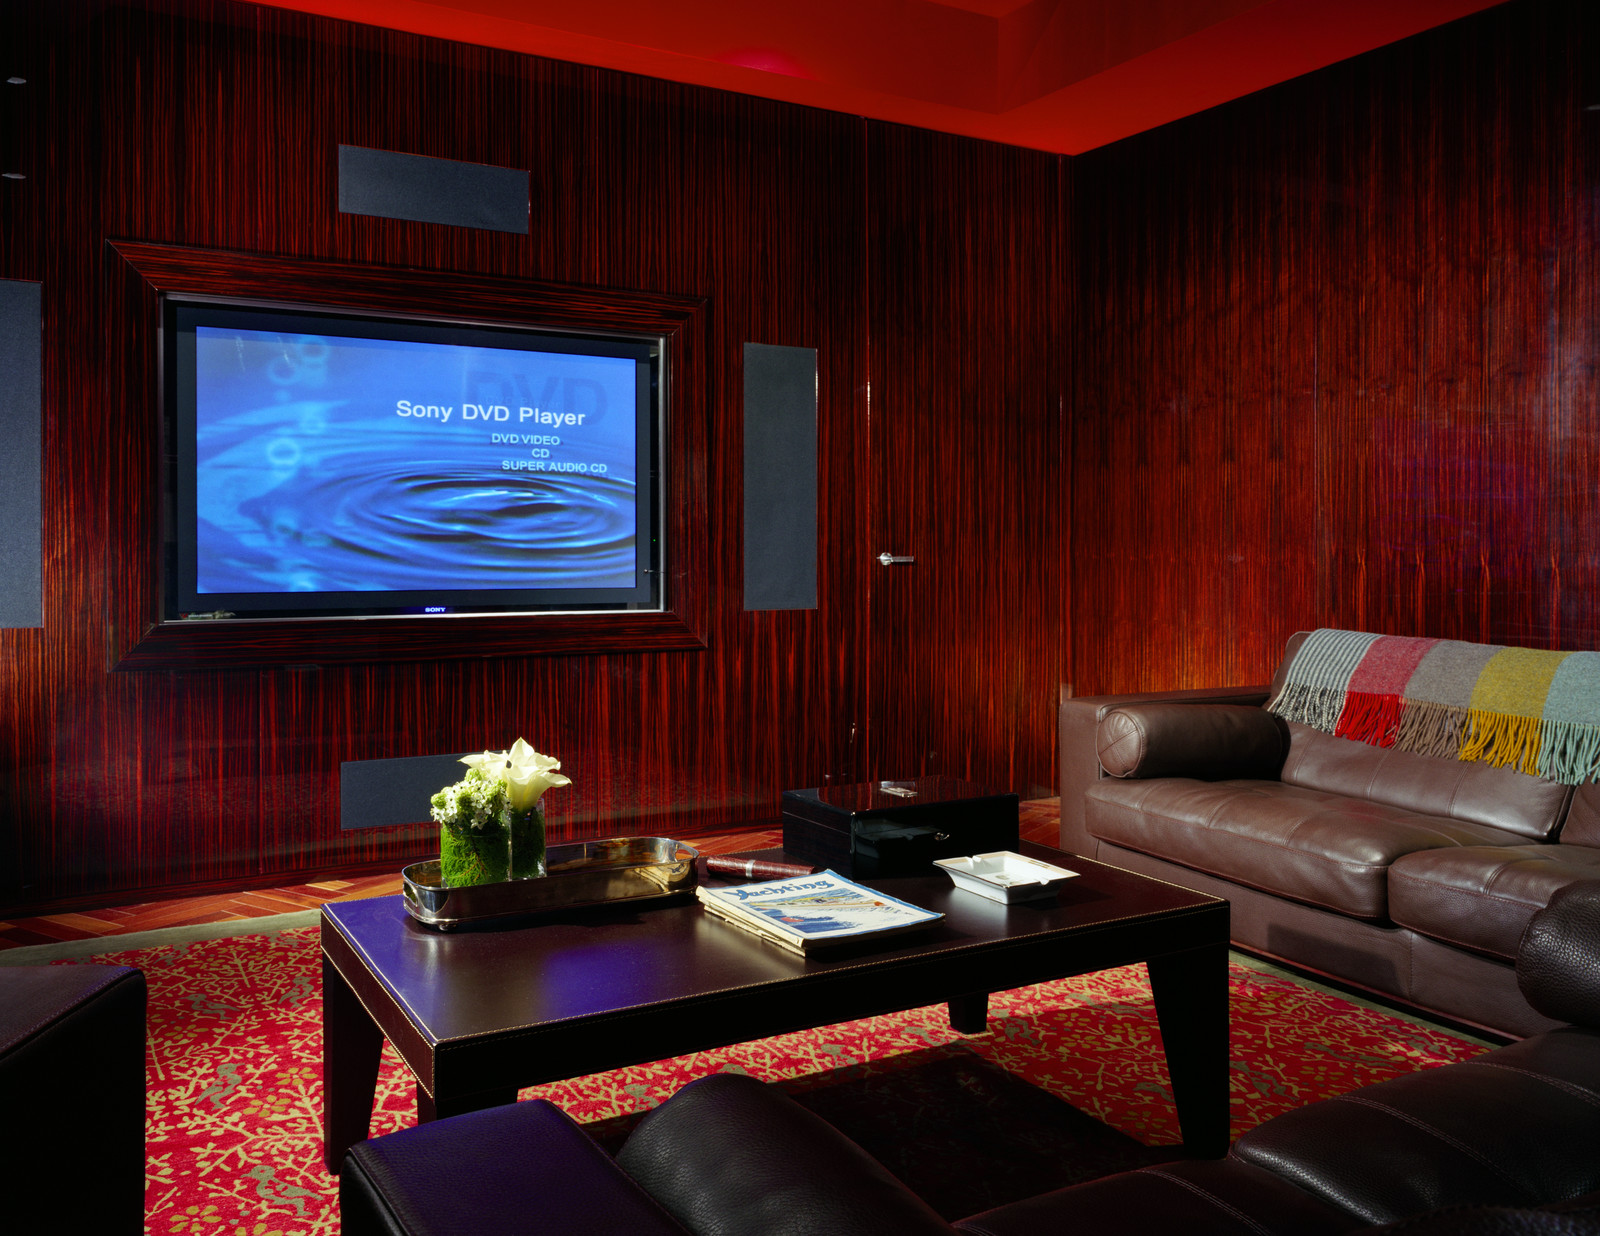 These custom wall panels make for an timeless, elegant and cozy media room